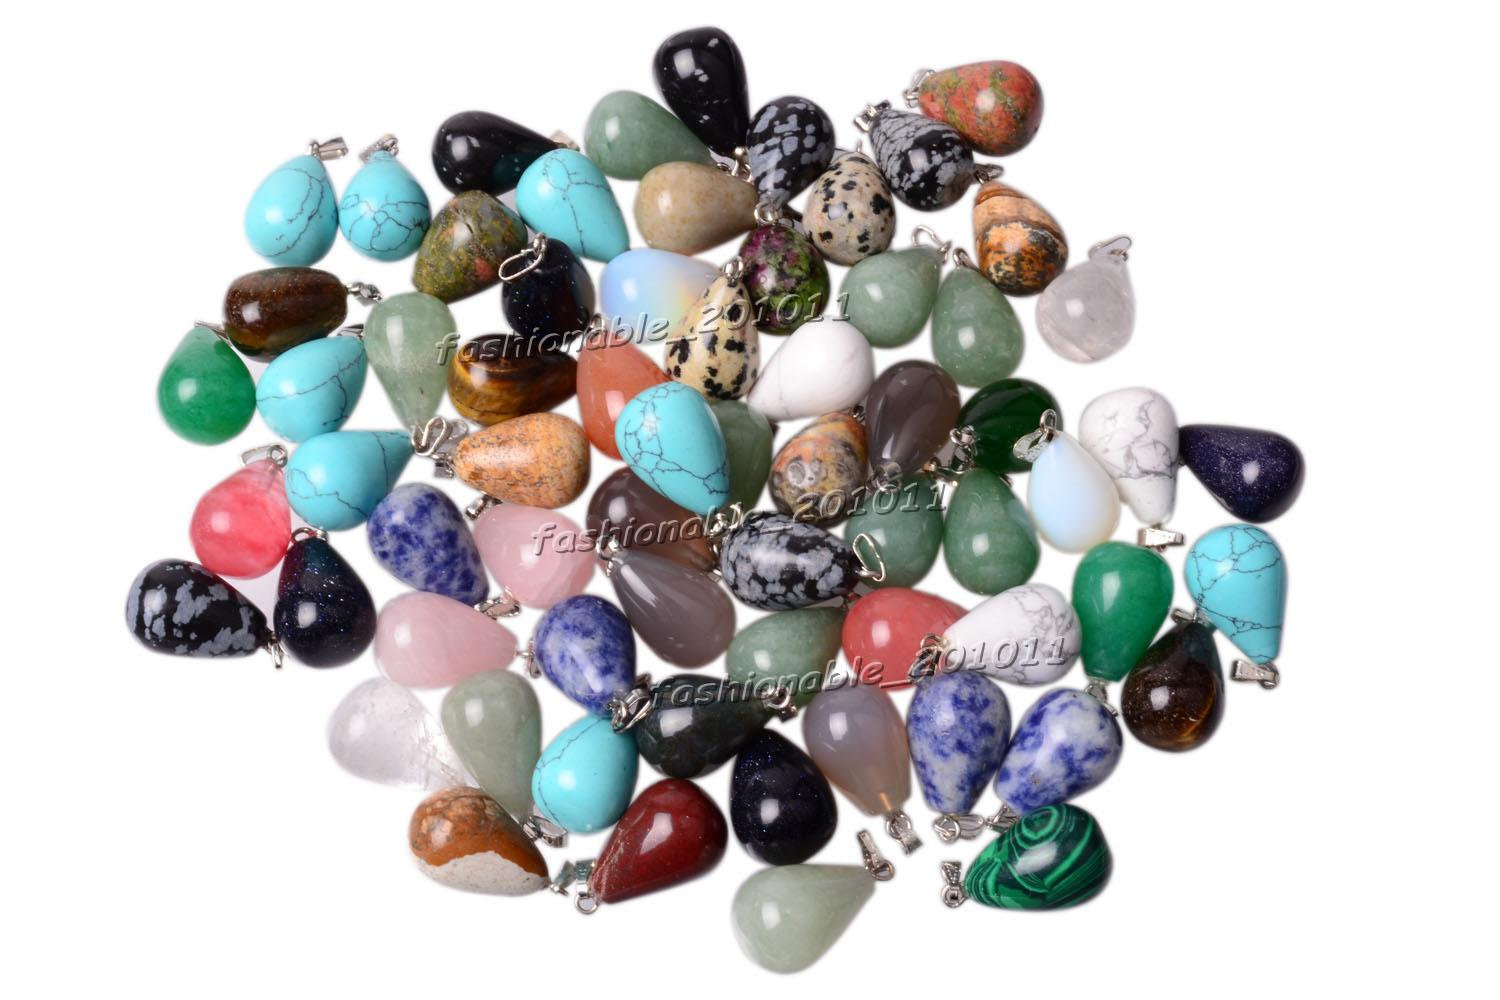 Wholesale Jewelry Drop Natural Assorted gemstone Stone mixed Pendants Loose Beads Fit Bracelets and Necklace Charms DIY #Bead0151